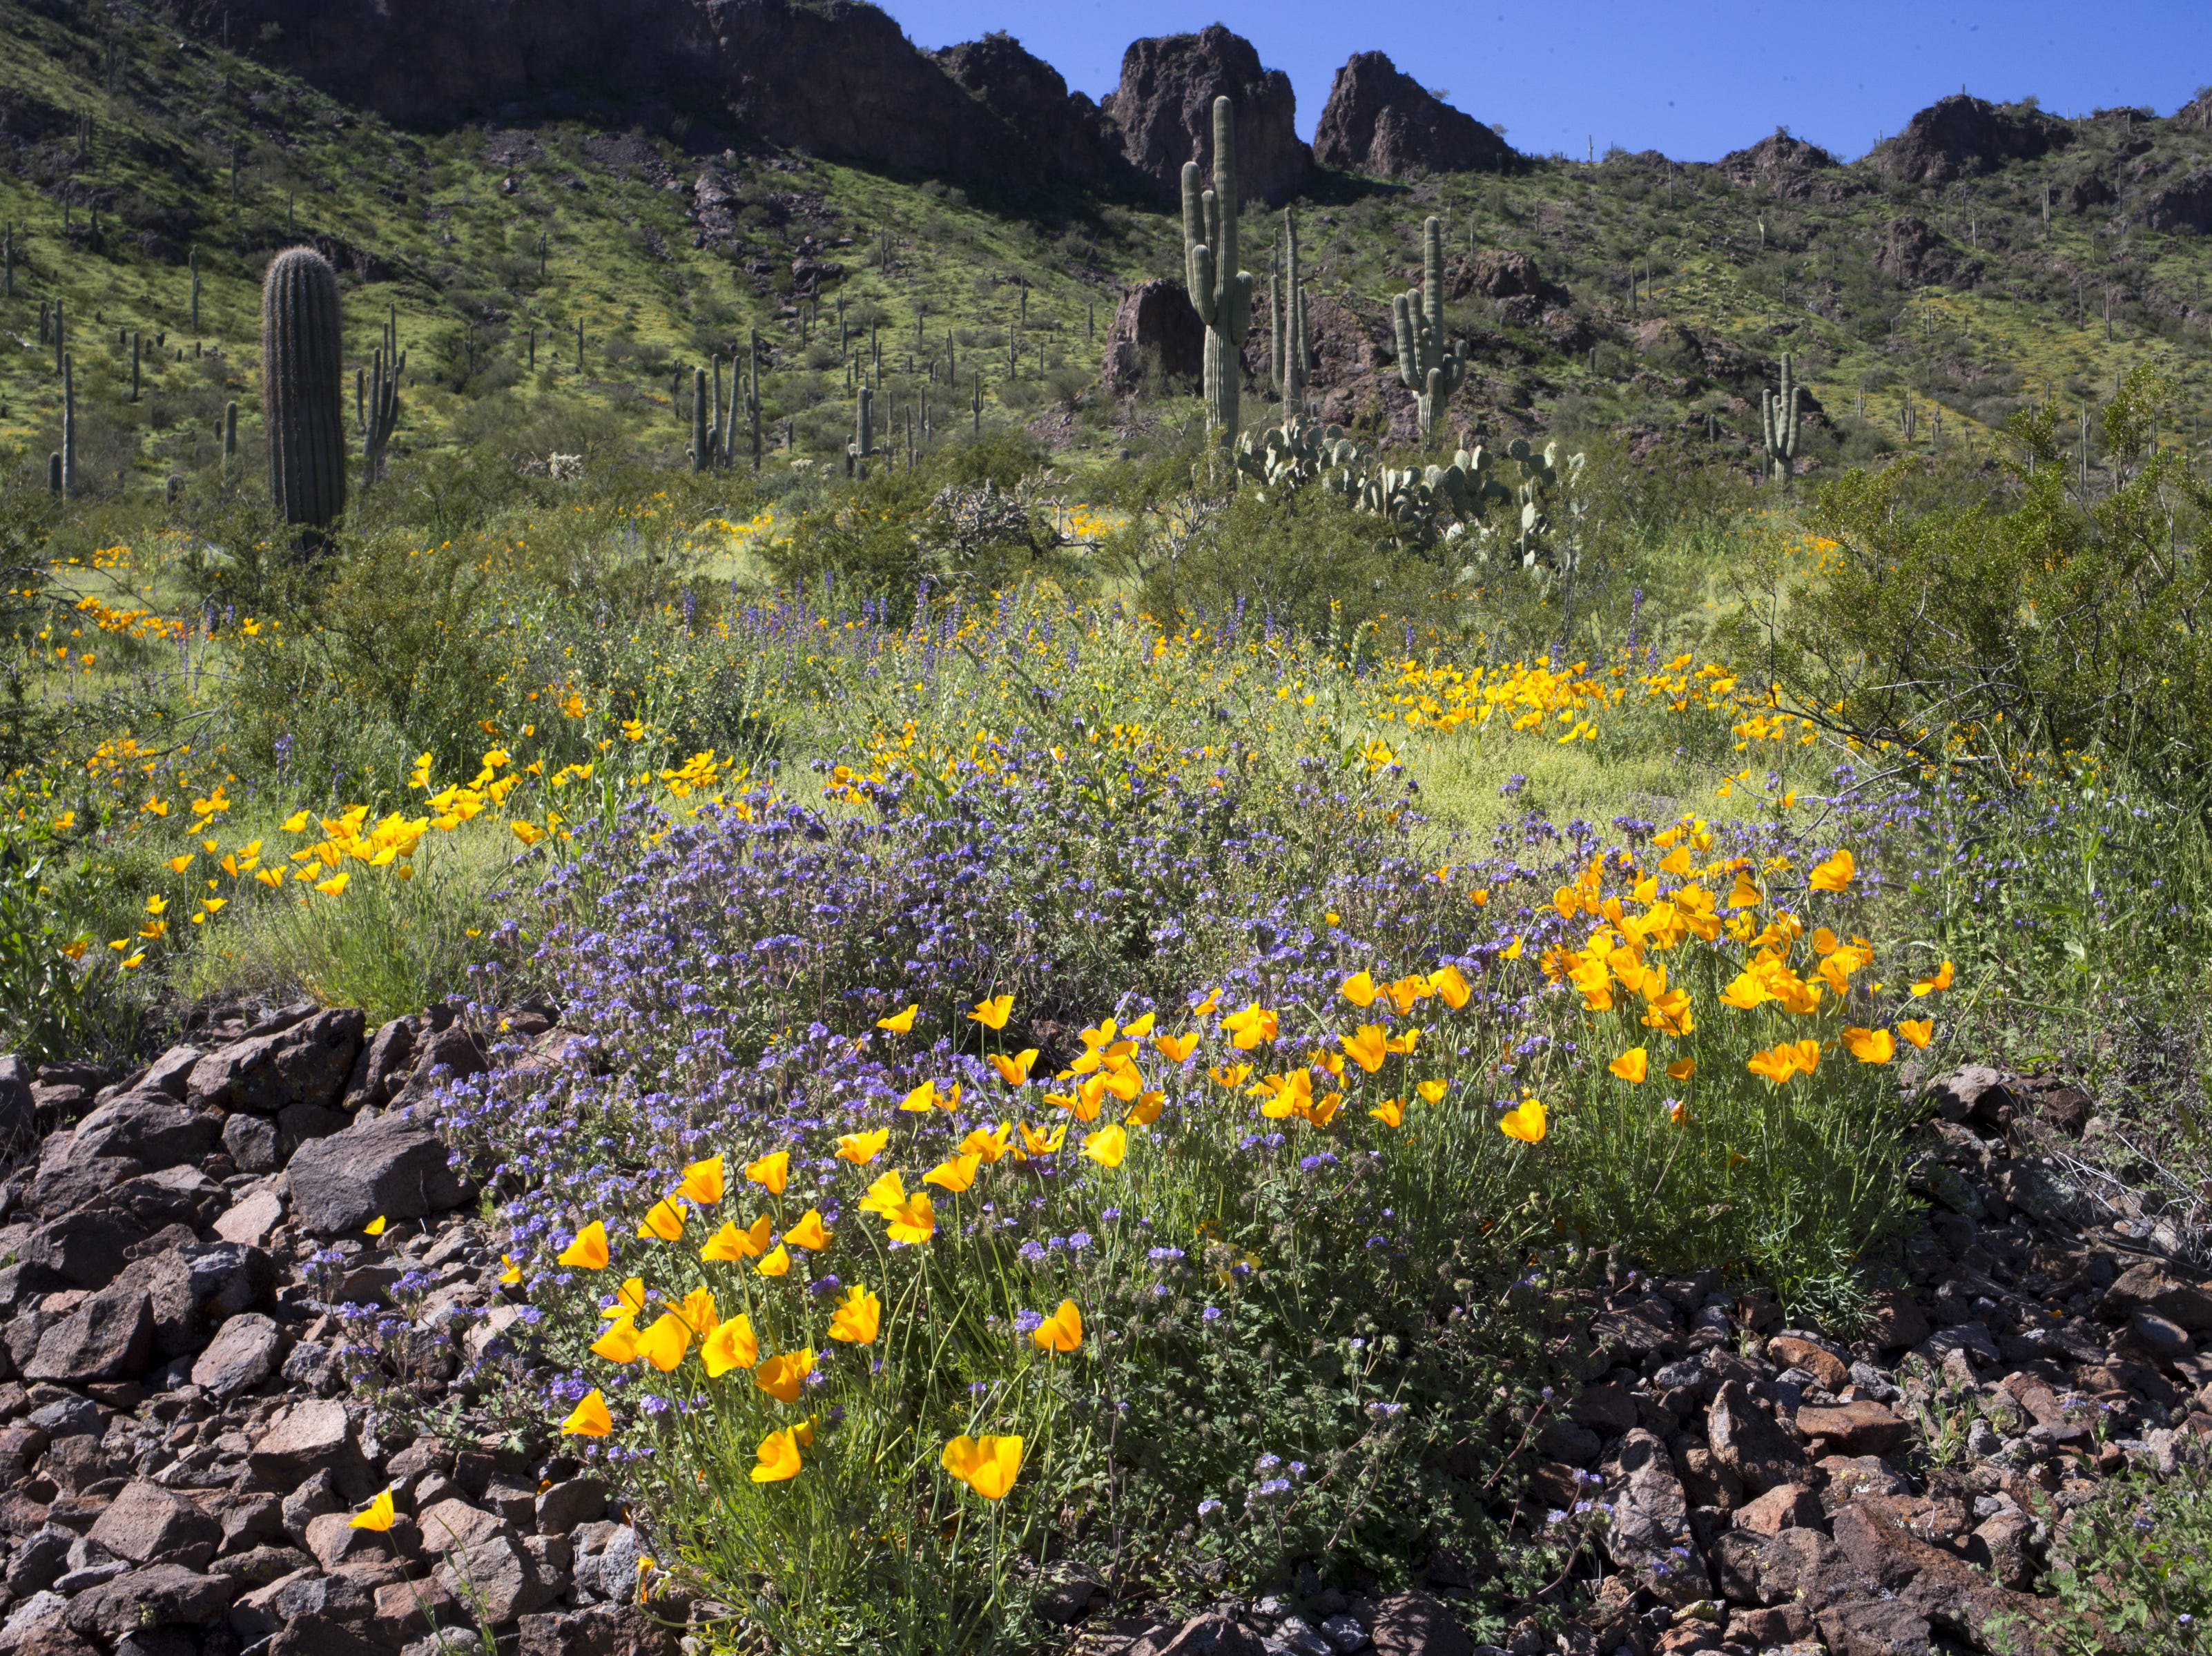 Poppies, lupine and cactus, March 5, 2019, at Picacho Peak State Park, Arizona.